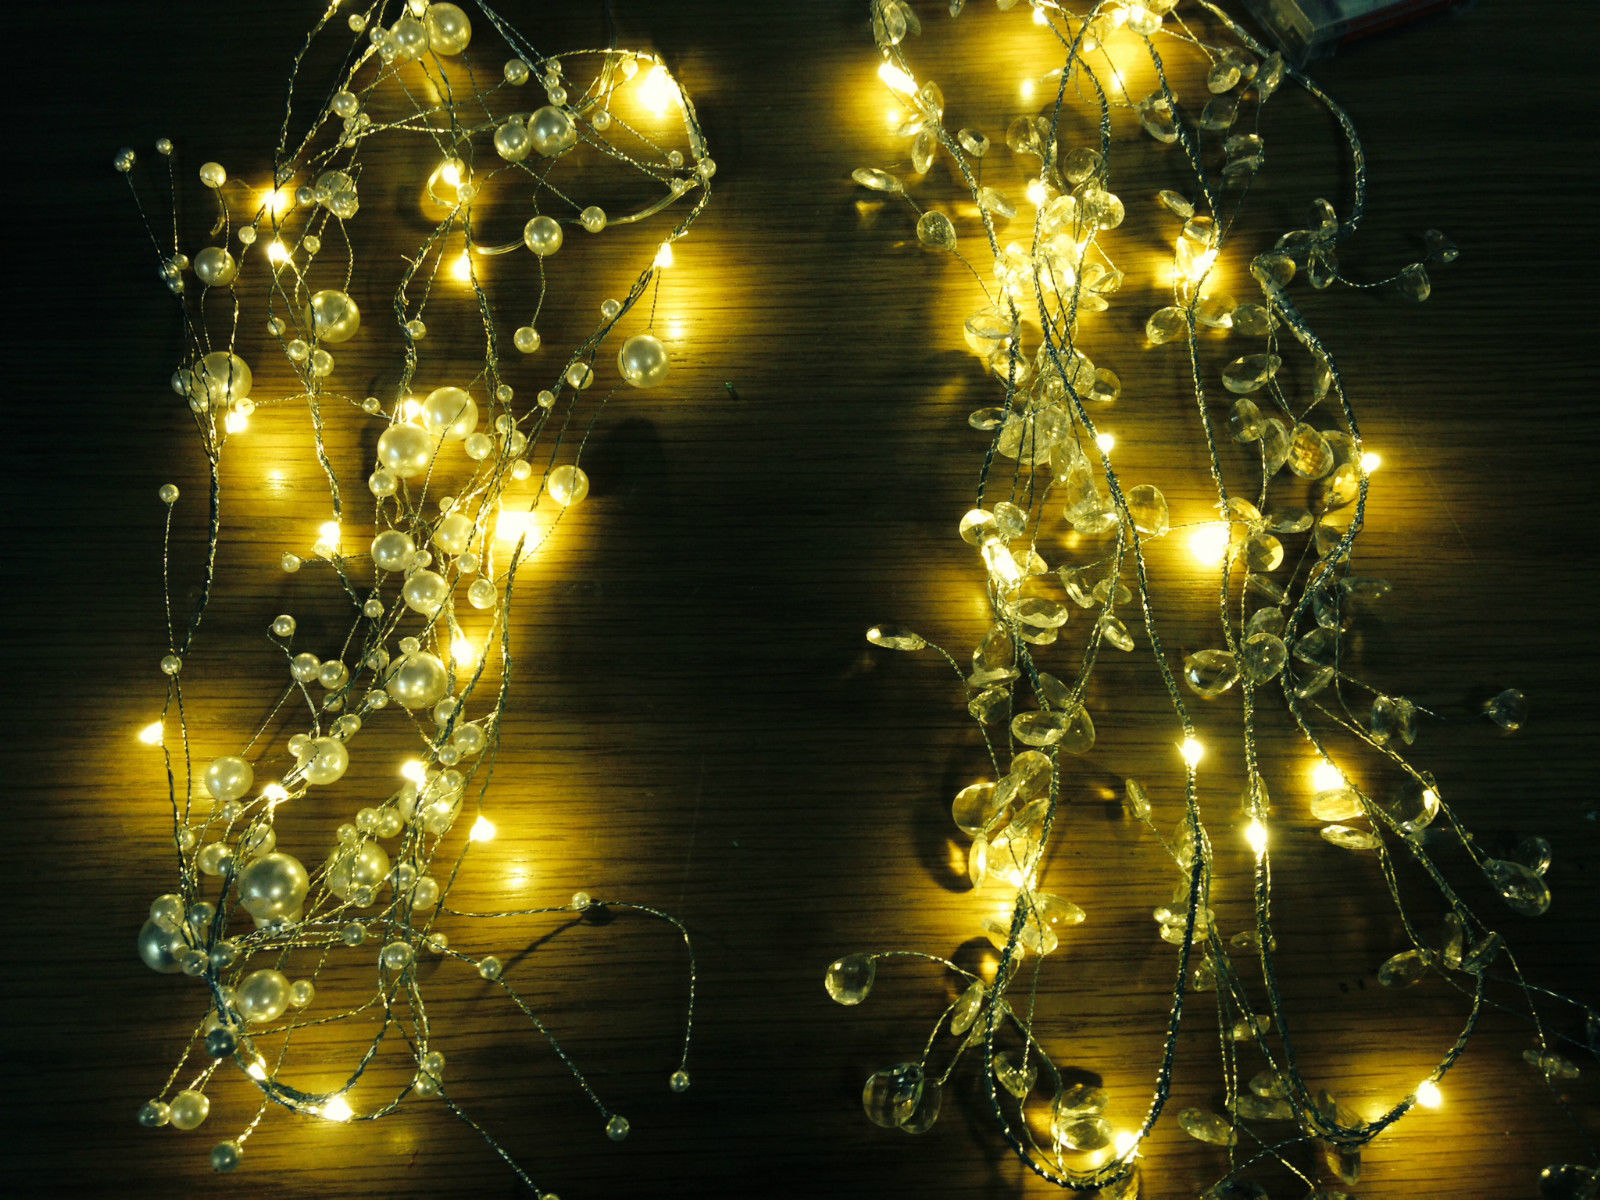 Garland Style String Lights : 2m WARM Wired LED Garland Christmas party string outdoor garden spray lights eBay